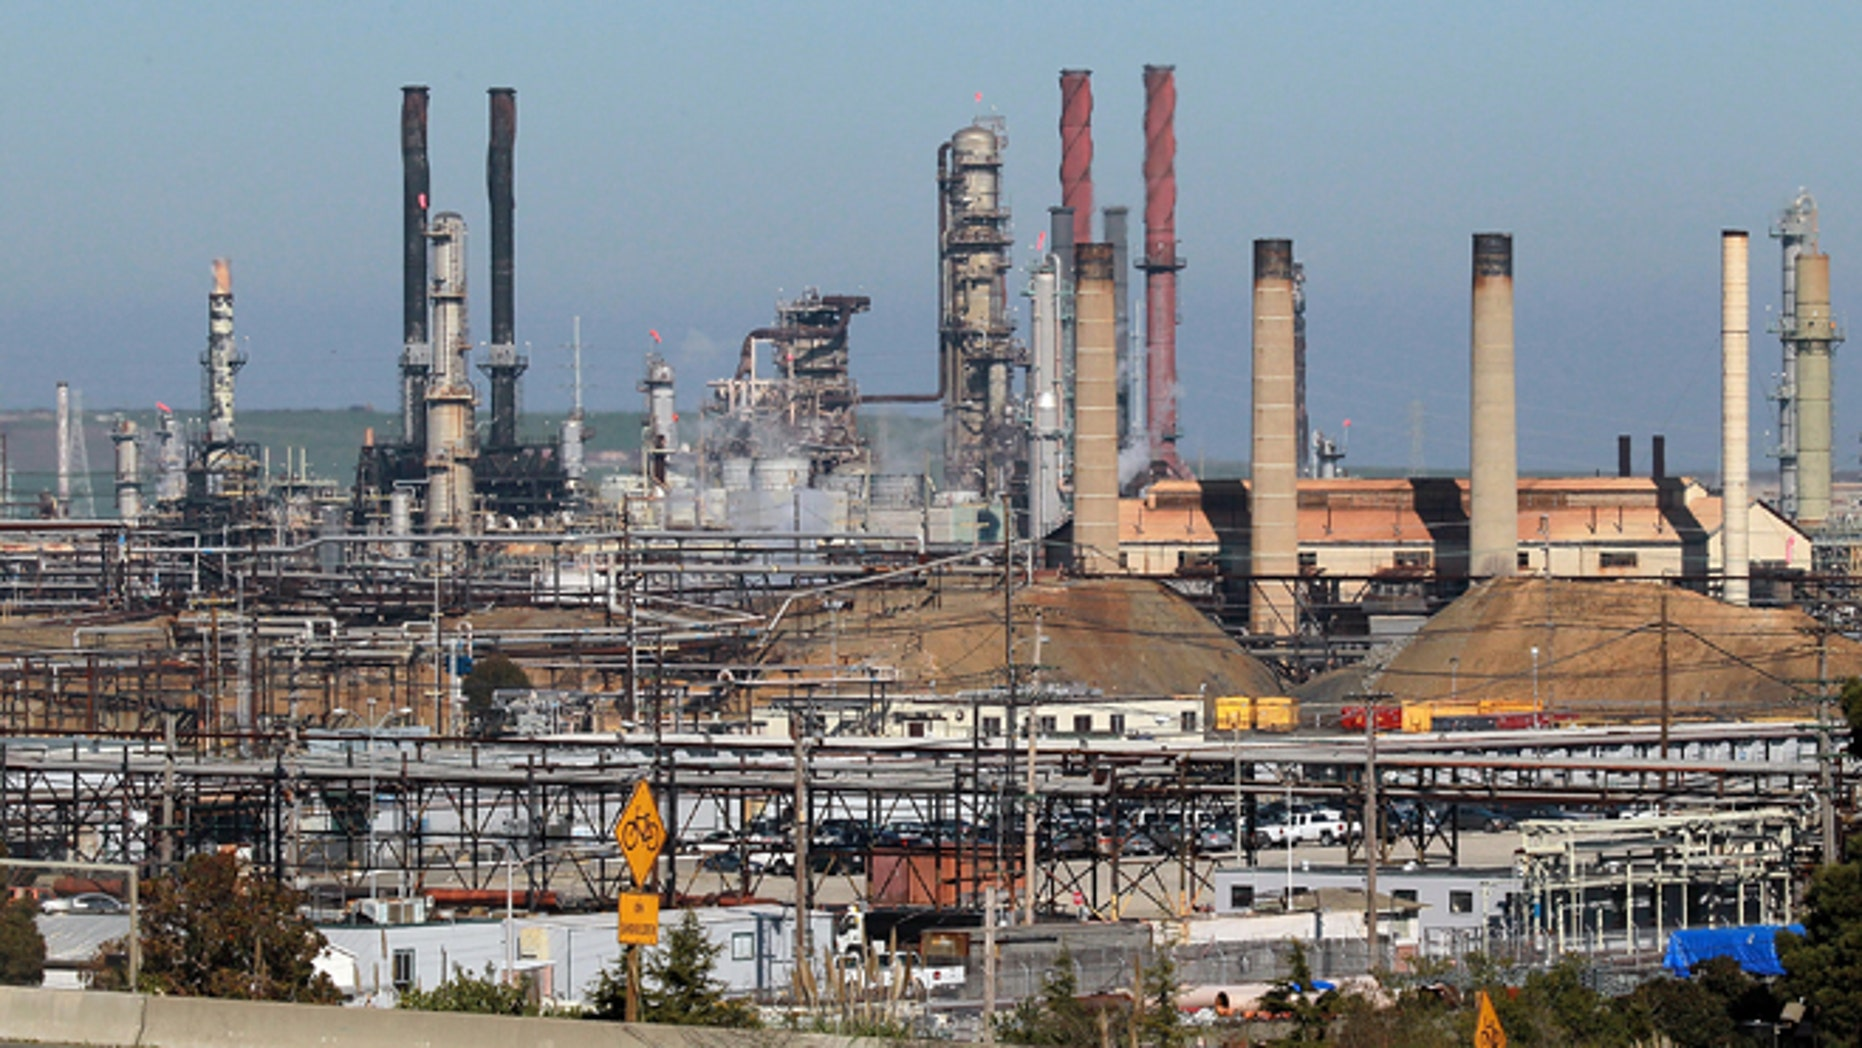 A car drives past the Chevron refinery on January 25, 2011 in Richmond, California. (Photo by Justin Sullivan/Getty Images)